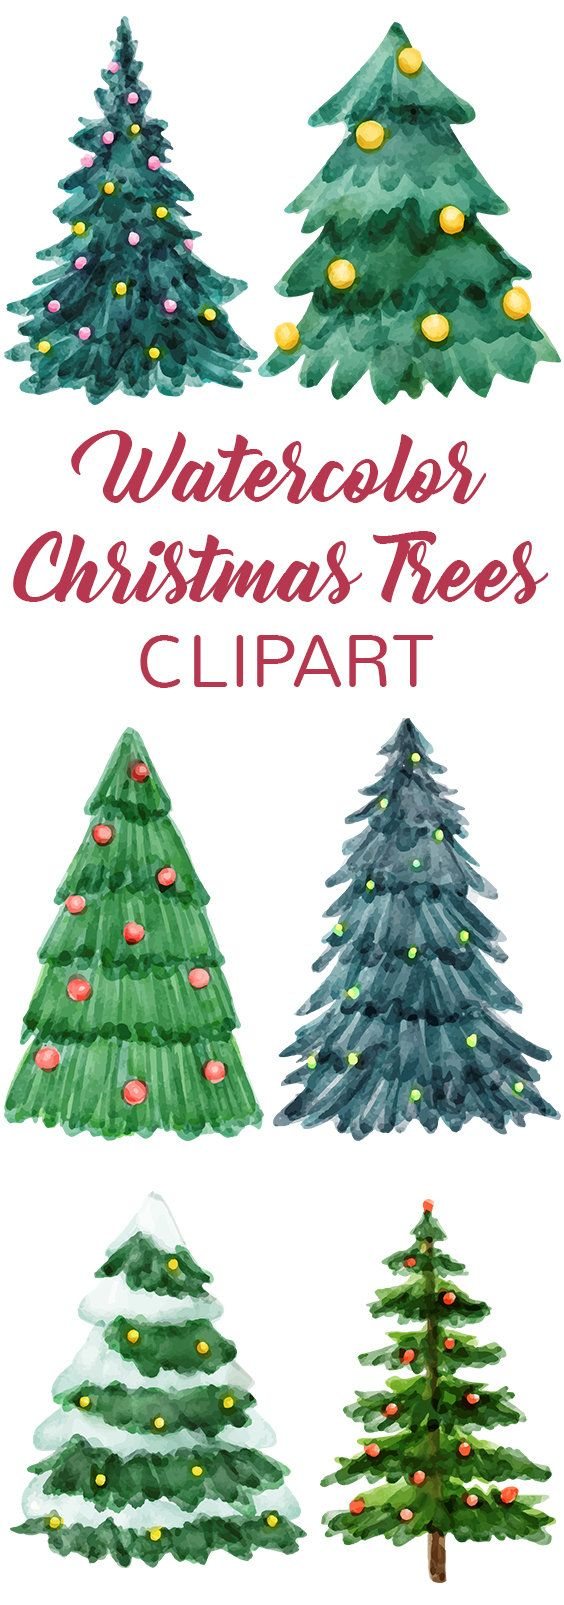 Watercolor Christmas Tree Collection Clipart Tree Clipart Etsy In 2020 Watercolor Christmas Tree Christmas Tree Drawing Christmas Tree Clipart